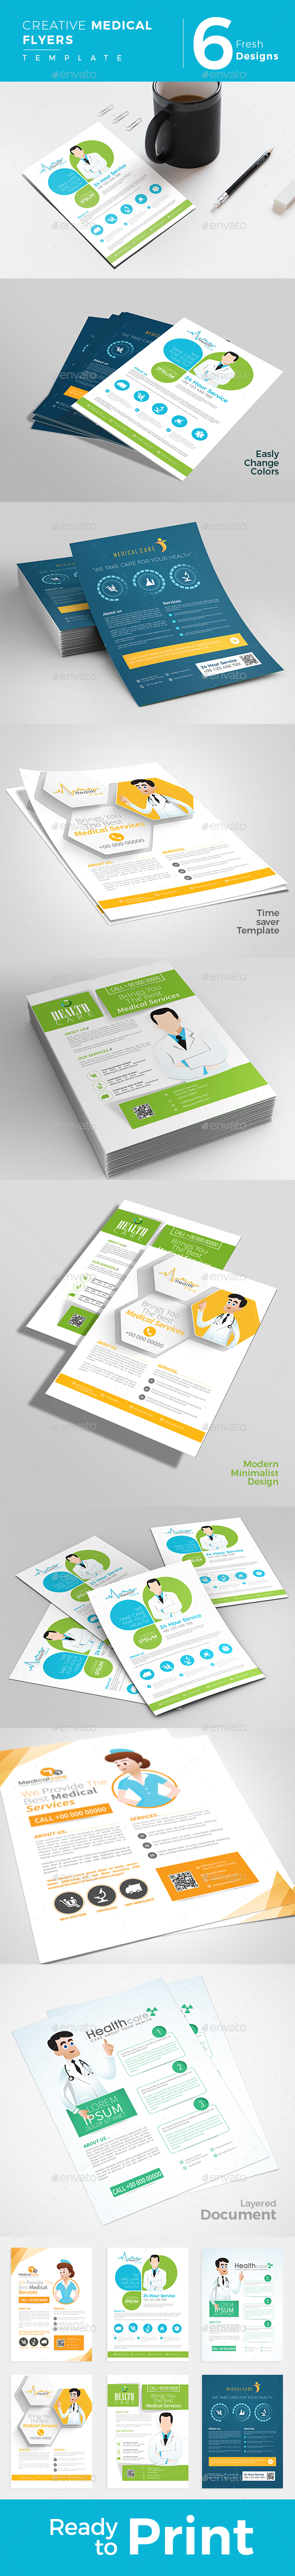 Creative Medical Flyers (6 Designs) - Miscellaneous Events